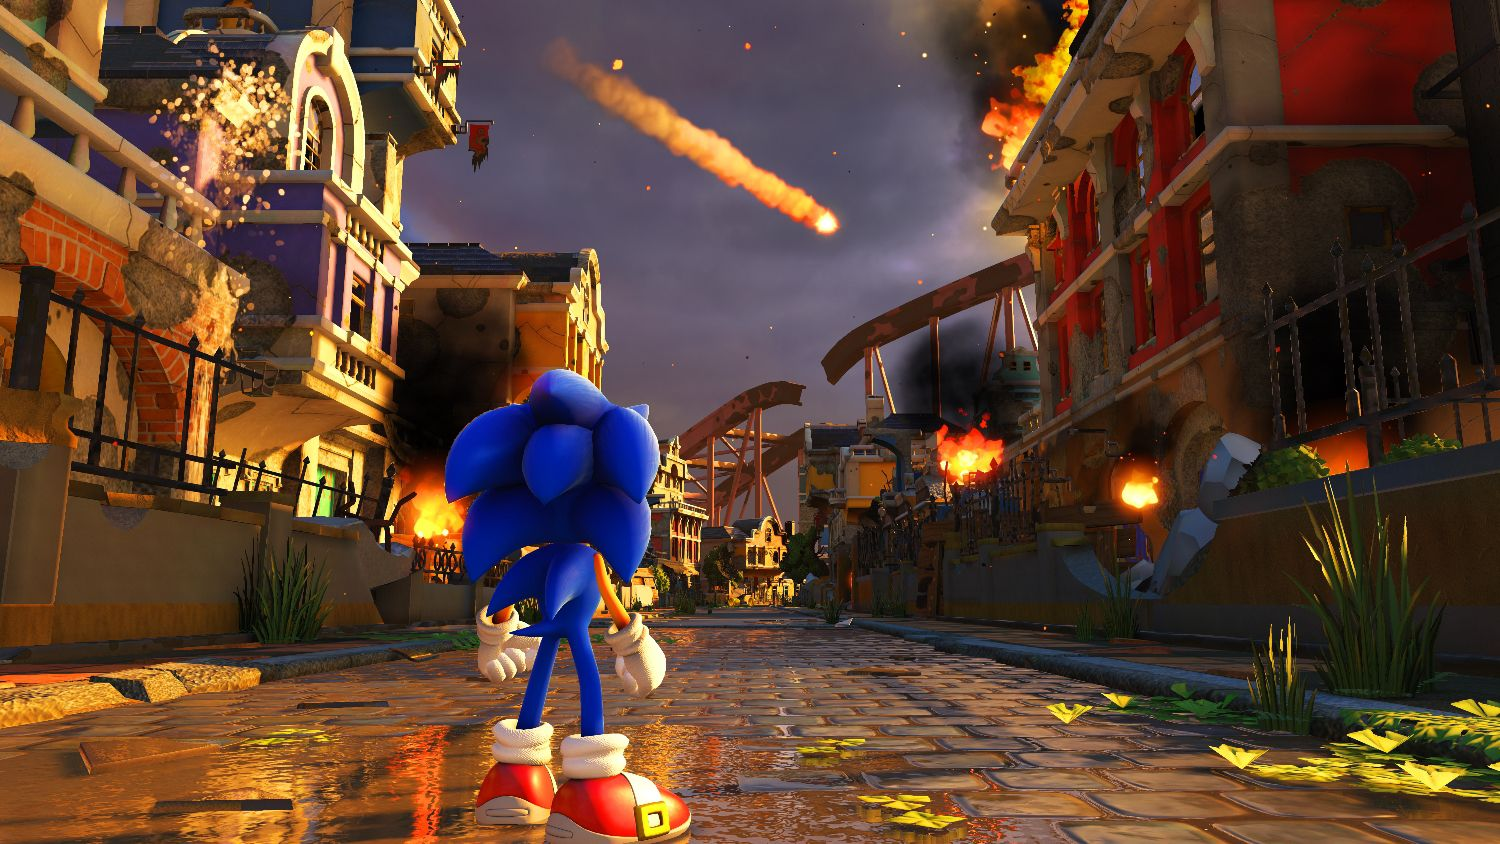 sonic2017_modernsonic_screen_02_1489538582.jpg